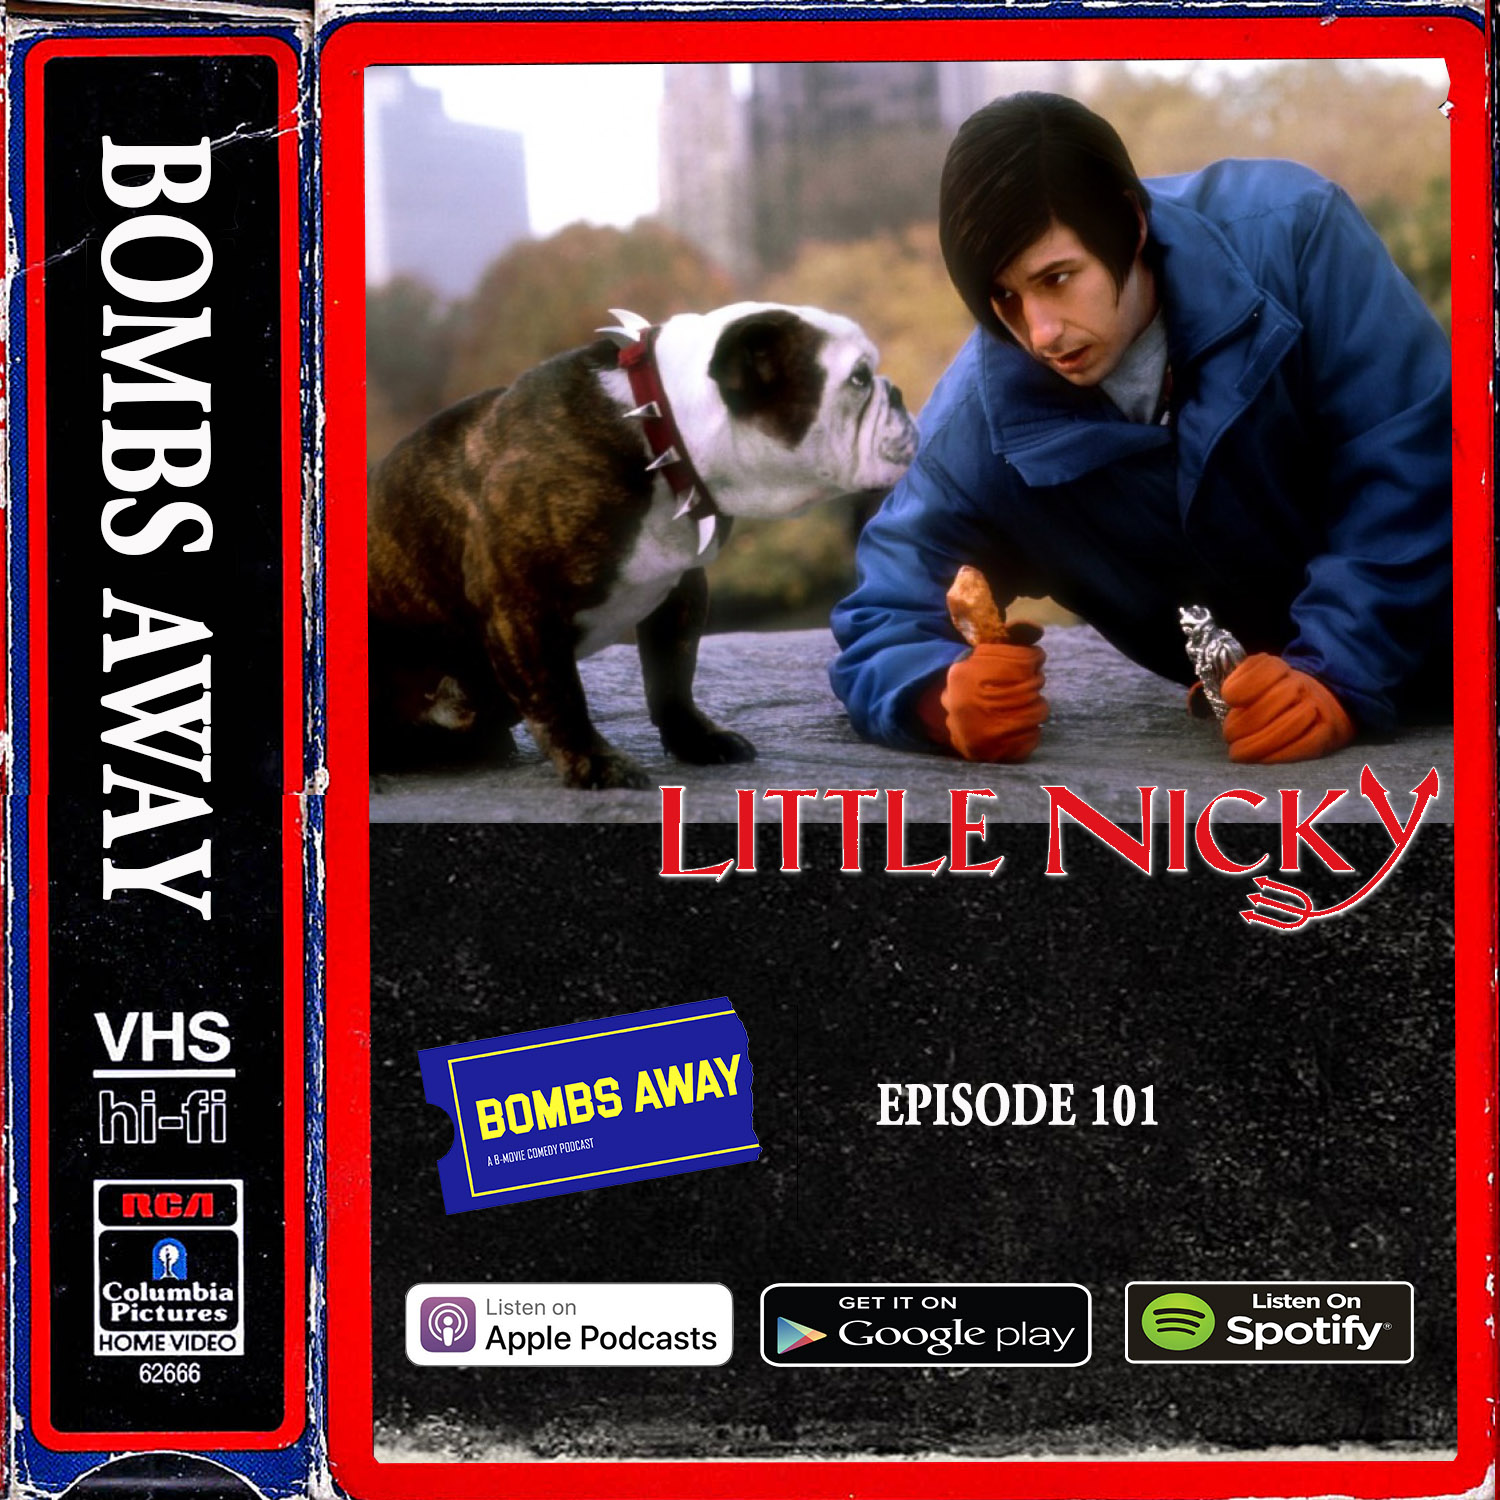 Episode 101 - Little Nicky (2000)